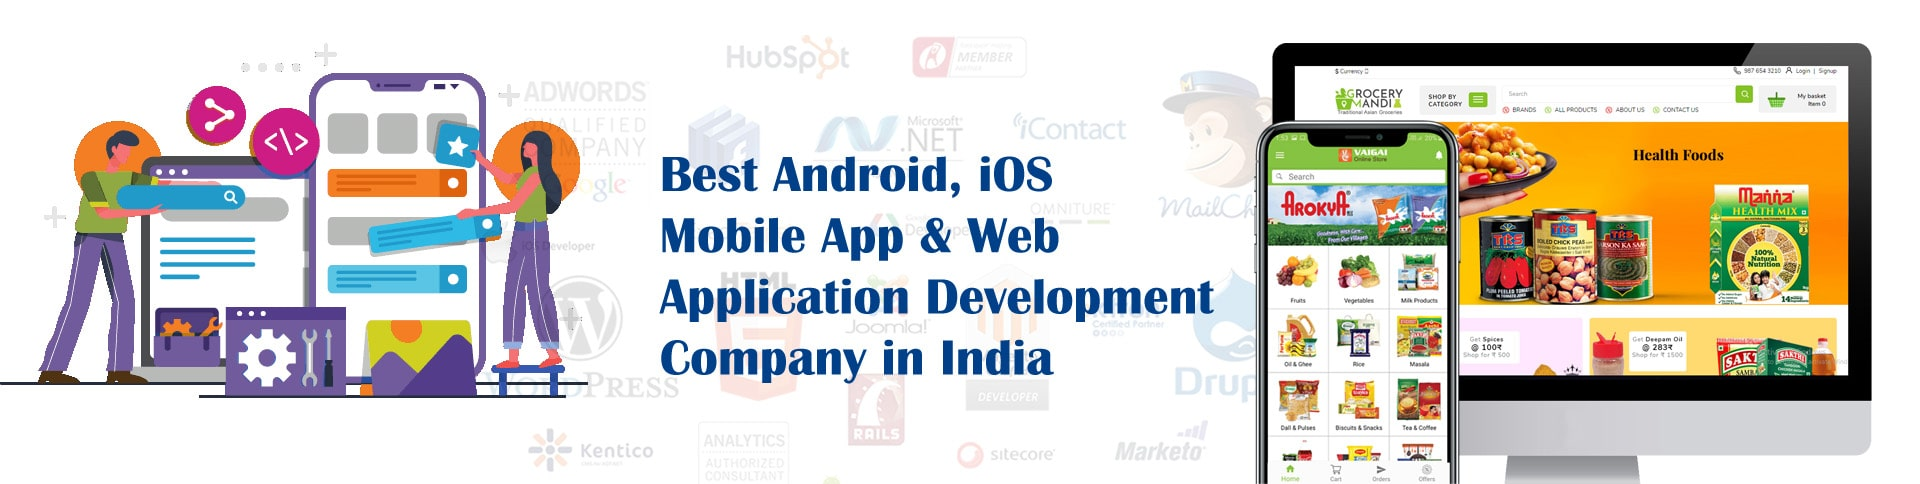 Best Android, iOS Mobile App & Web Application Development Company in India